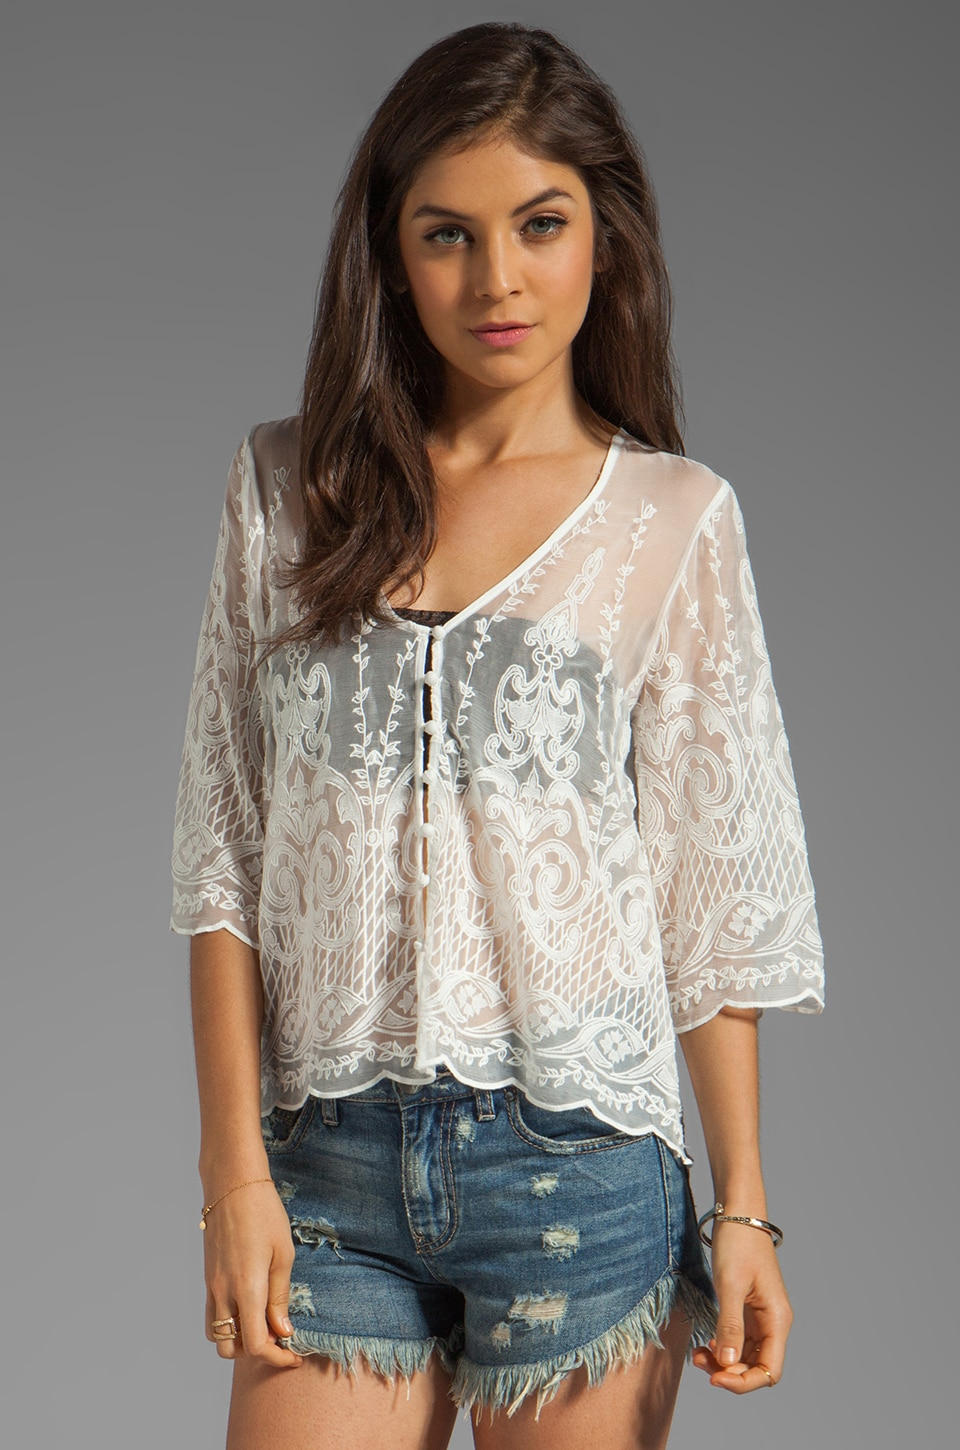 Dolce Vita Jinger Silk Embroidery Long Sleeve Button Down Blouse in Snow